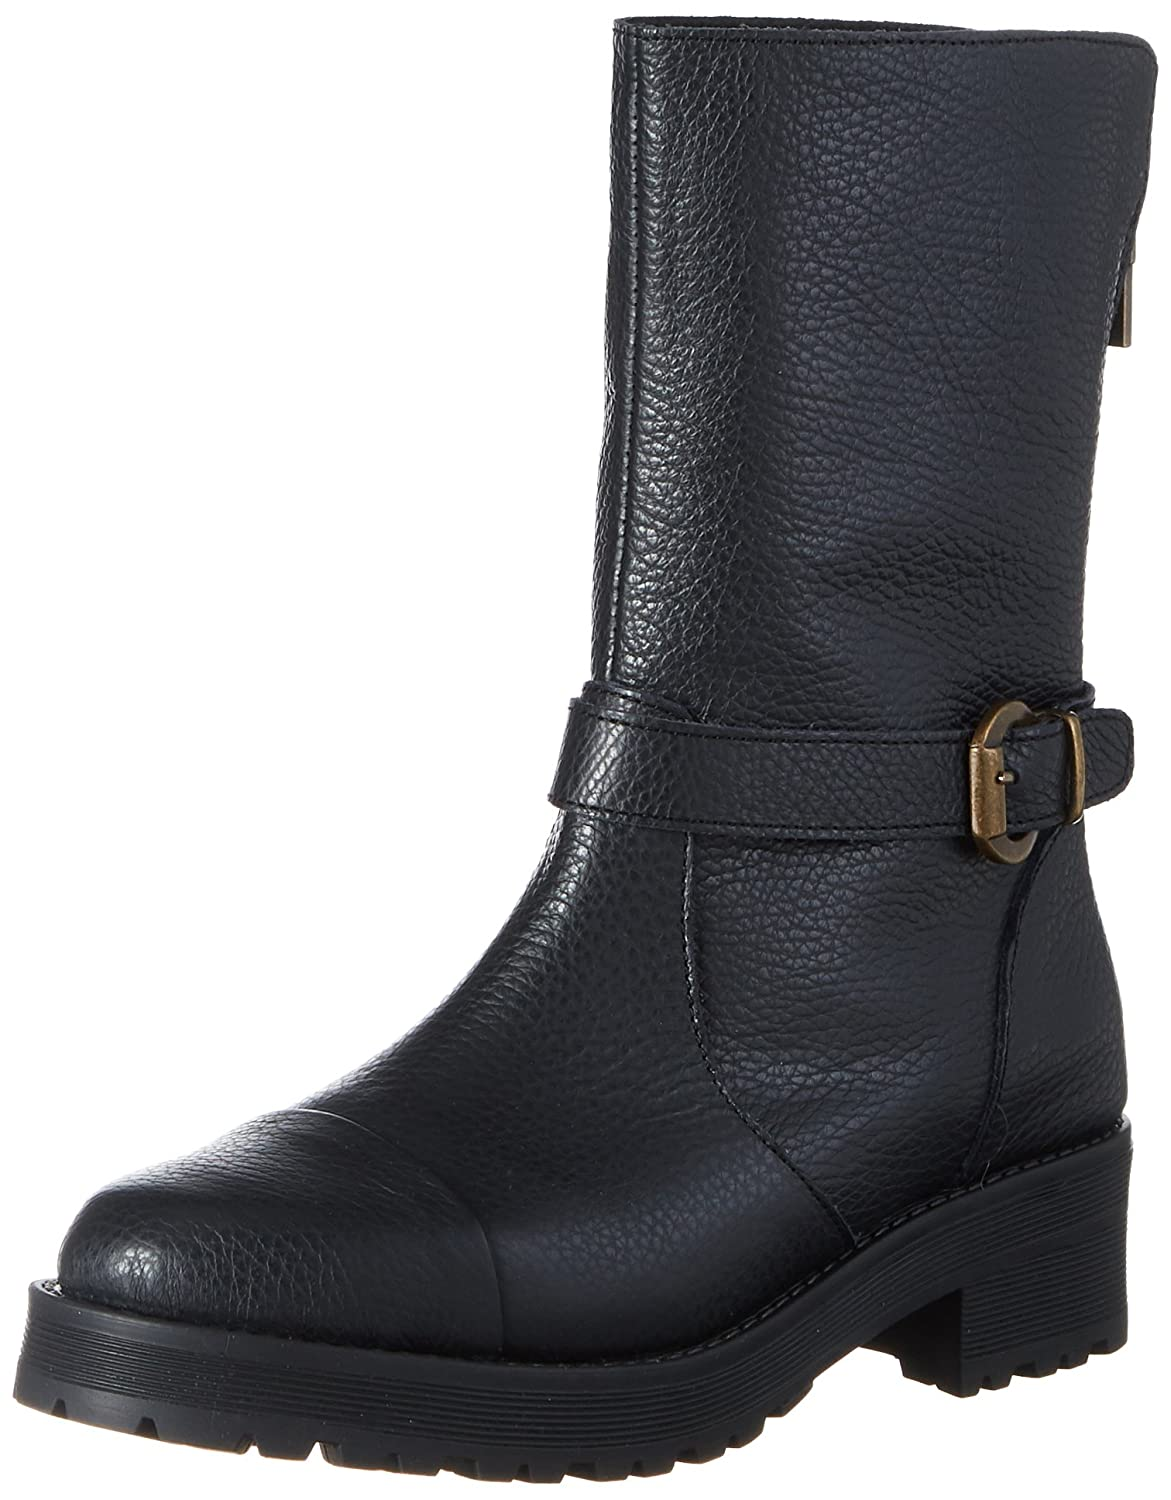 Shoe The Bear Kitty S, Botas para Mujer36 EU|Negro (110 Black)